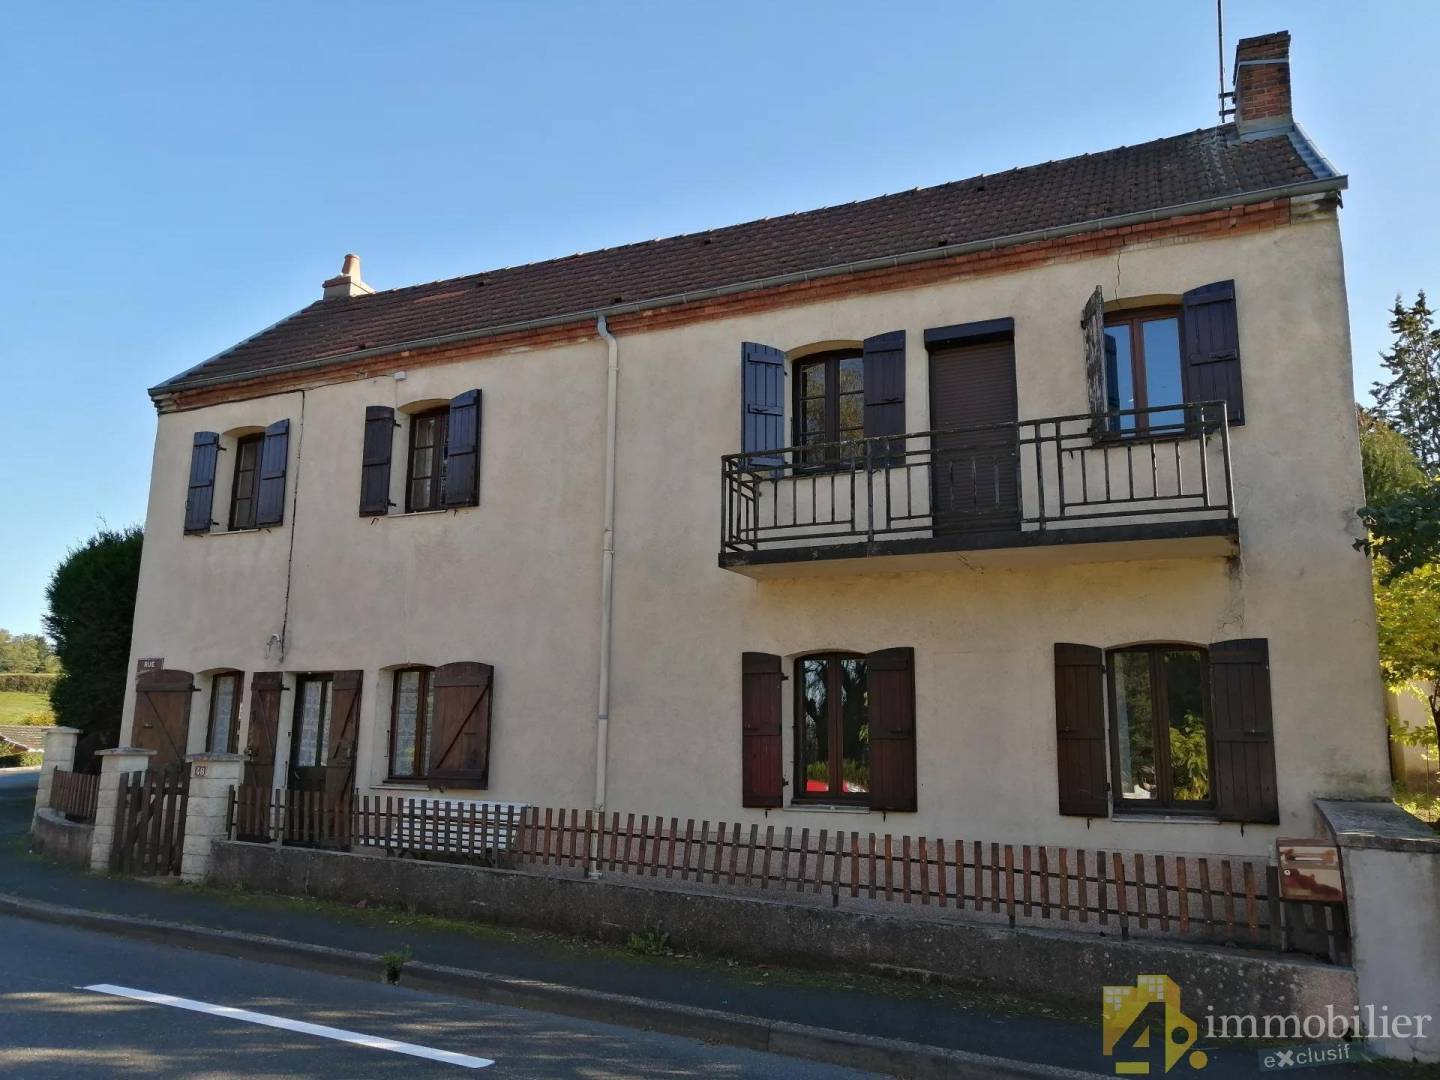 1 18 Perrecy-les-Forges